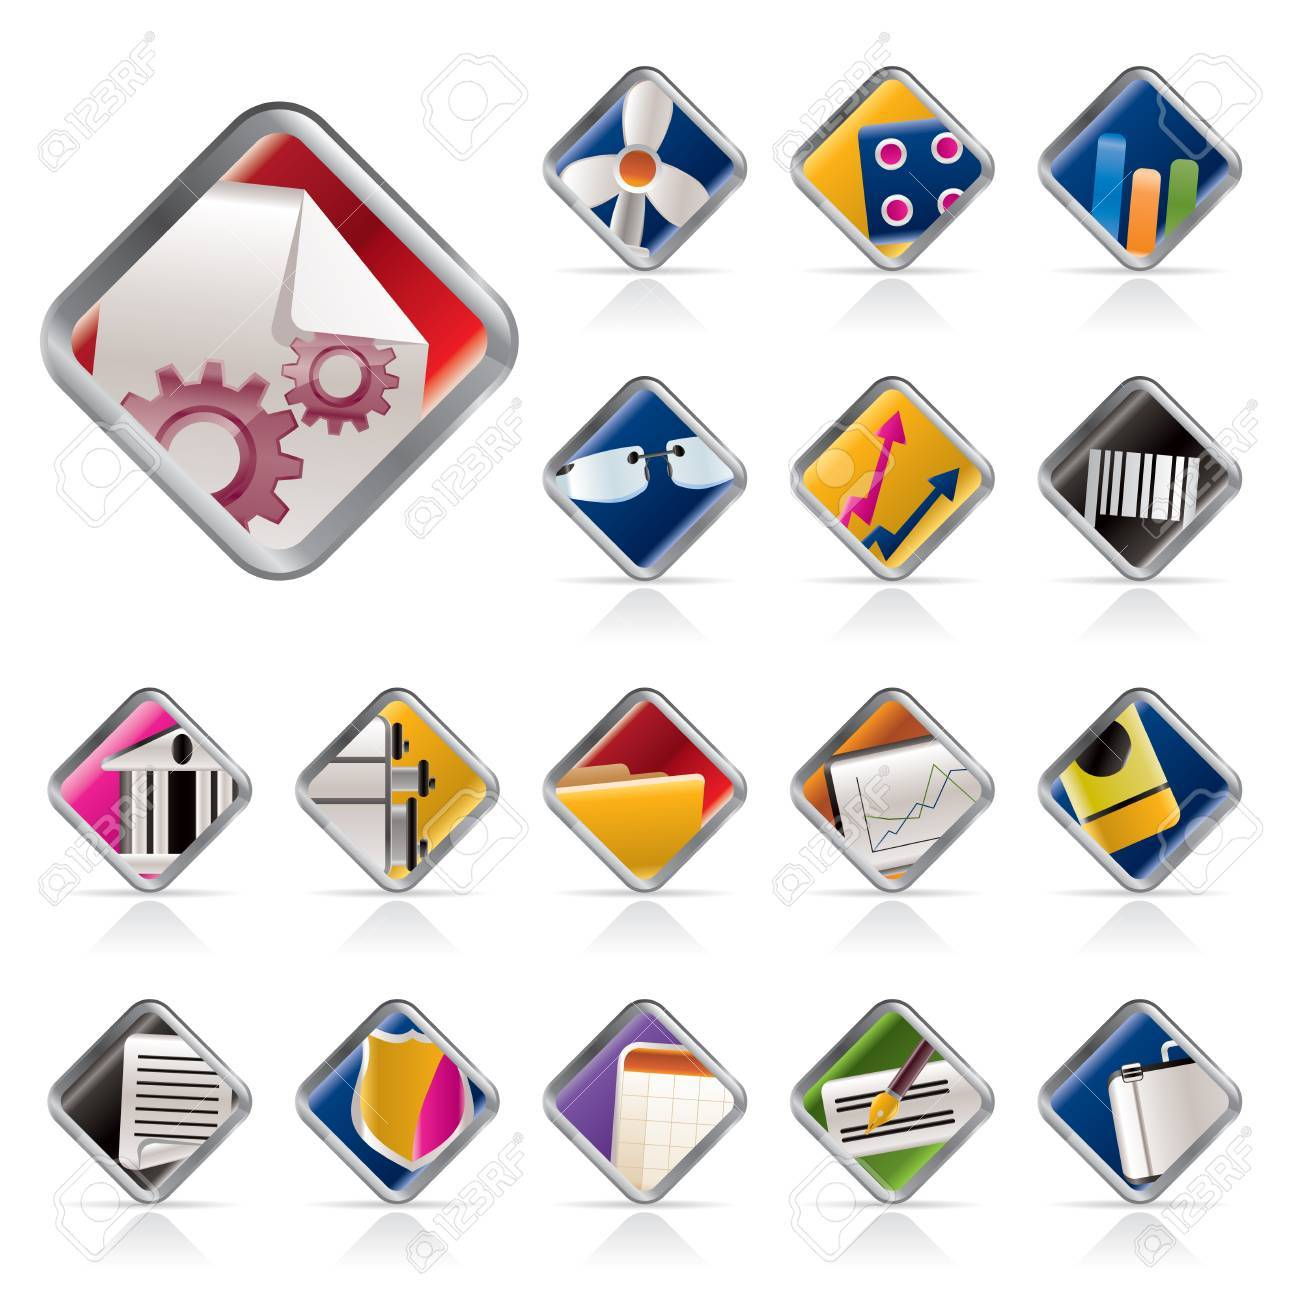 Realistic Business and Office Icons - Vector Icon Set 2 Stock Vector - 5408875